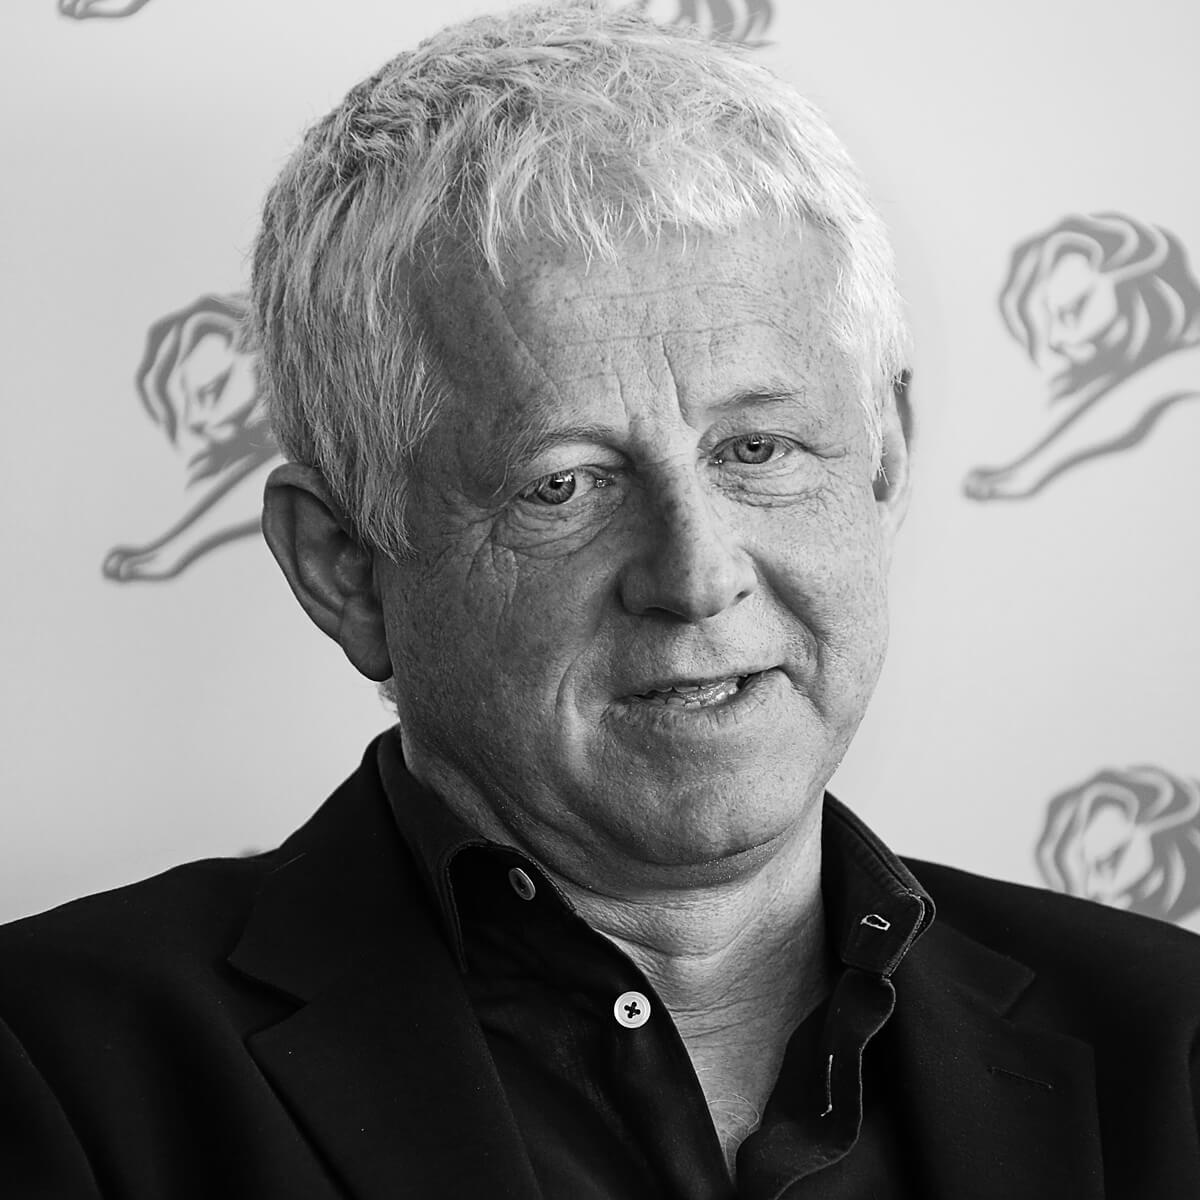 Portrait of Screenwriter Richard Curtis by Julian Hanford at Cannes Lions 2017